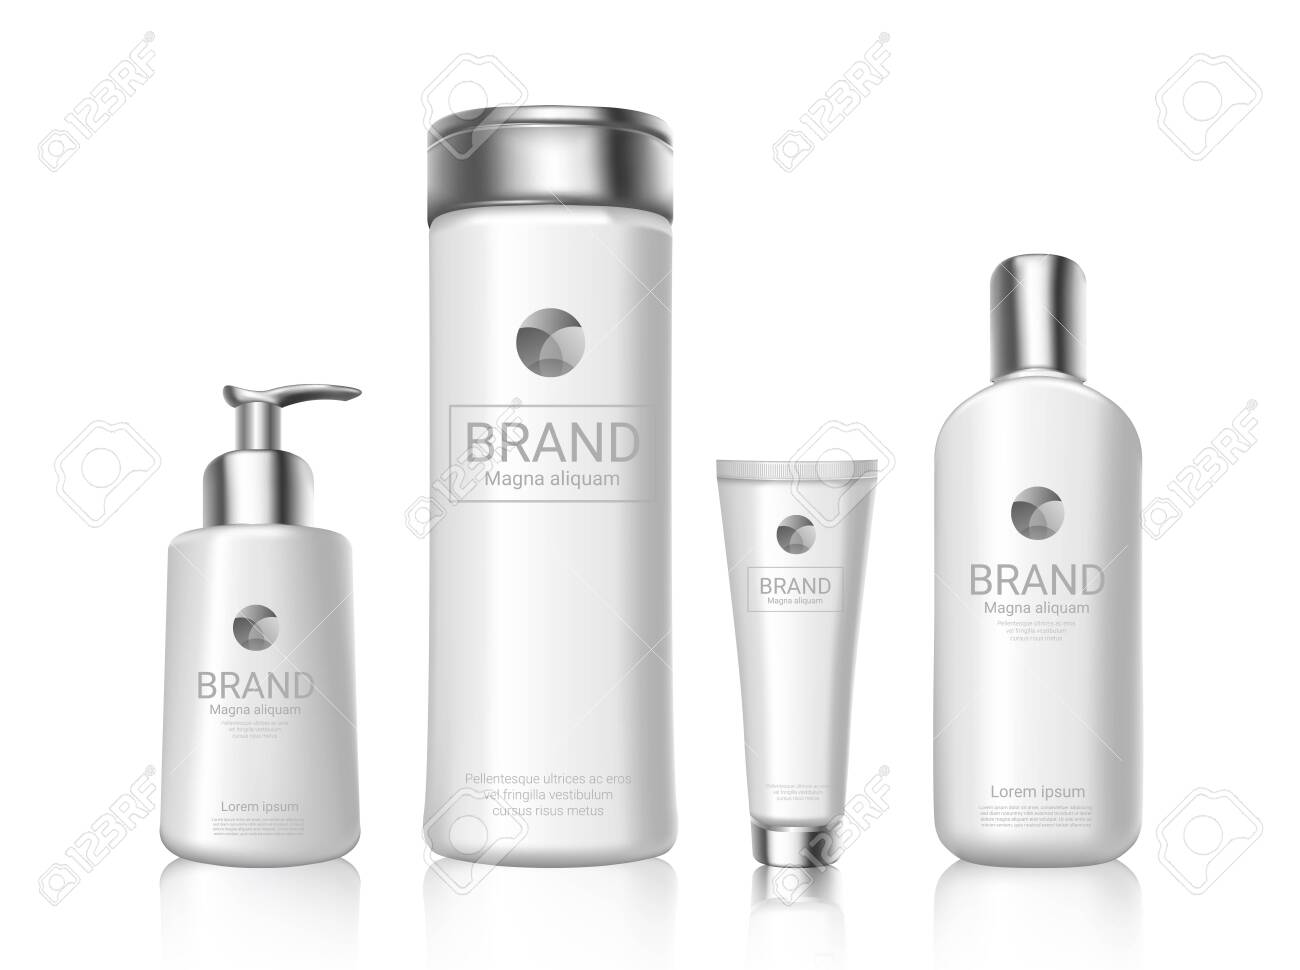 White cosmetics bottles with brand package design mockup - 138079575